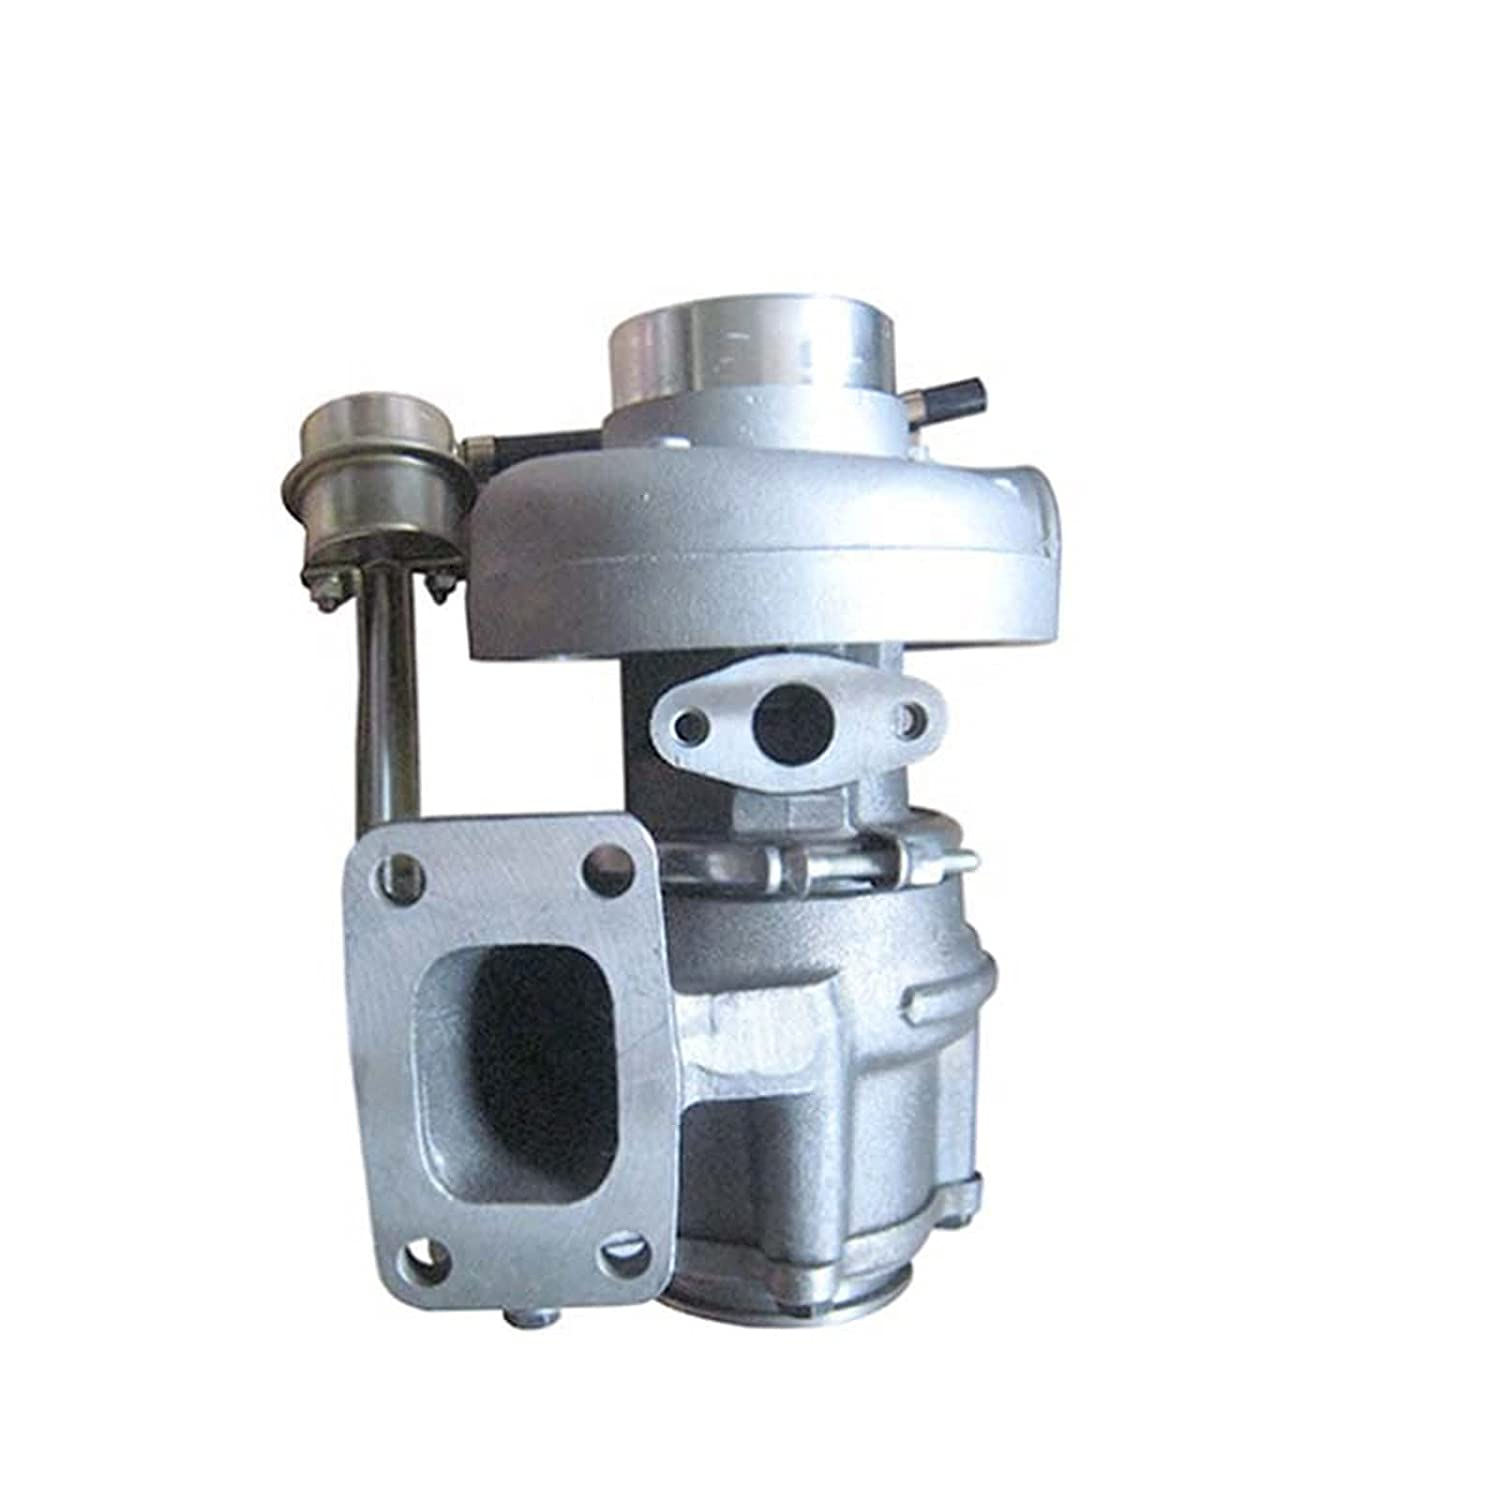 Nayuank Compatible with Cummins Engine 4BT Turbo Max 77% OFF HX30W Dealing full price reduction Turbochar